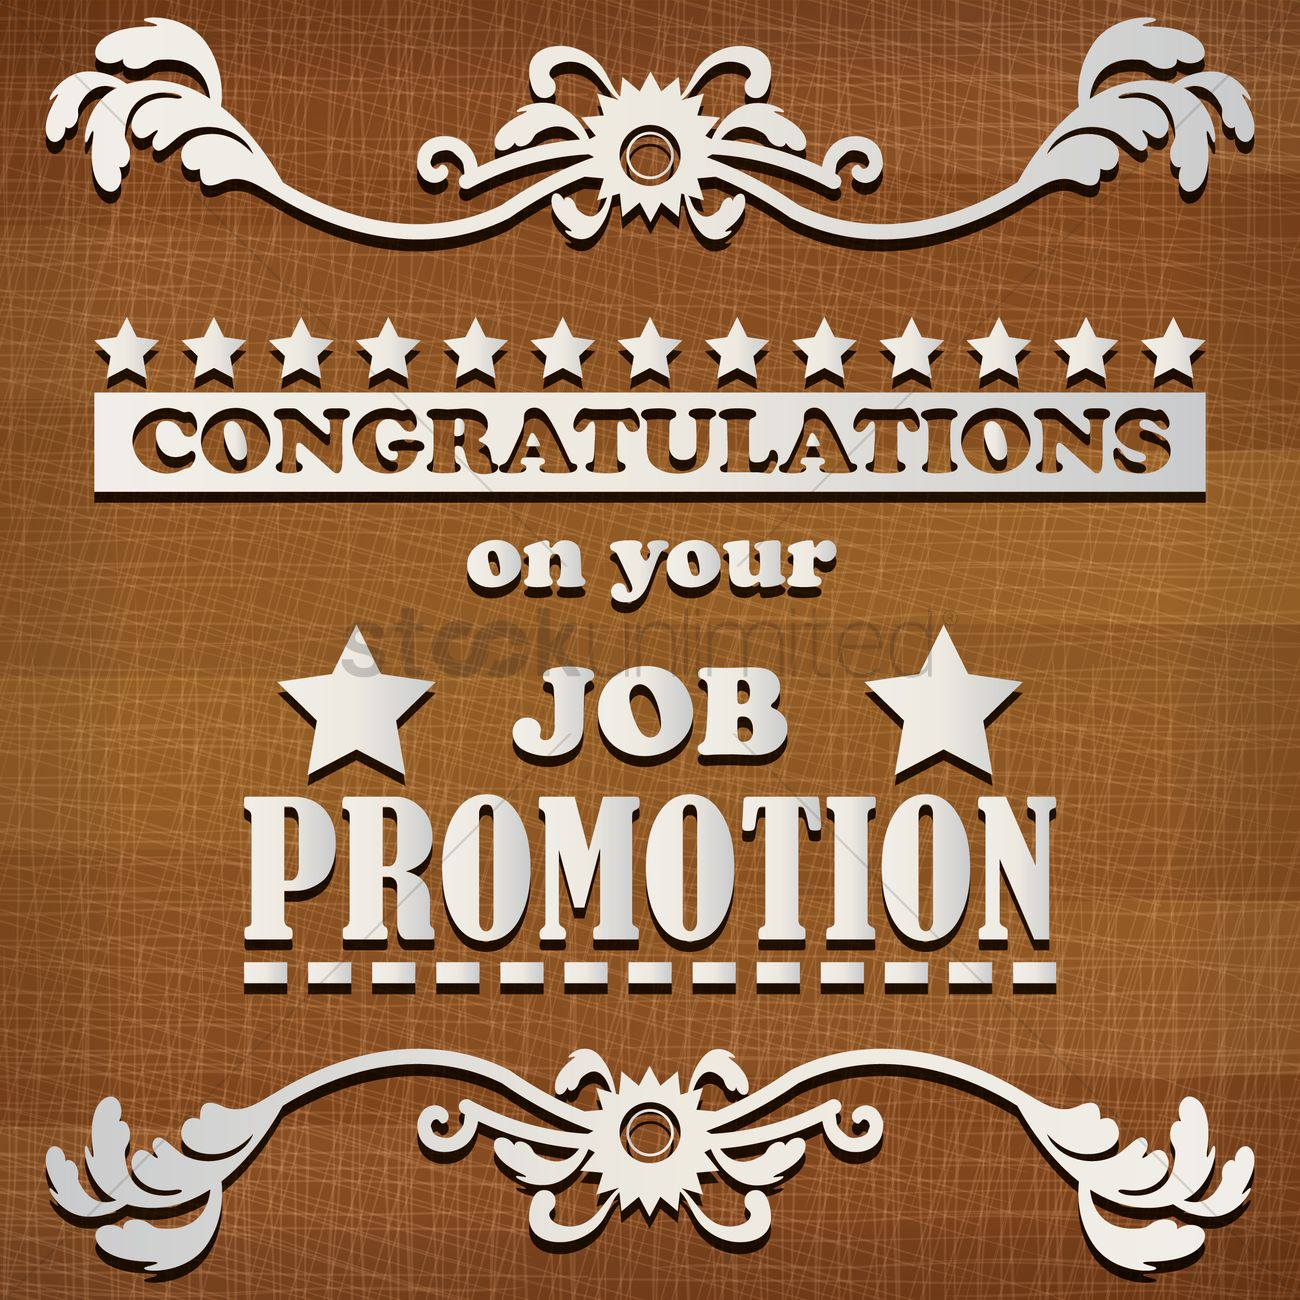 congratulations on promotion card keni candlecomfortzone com